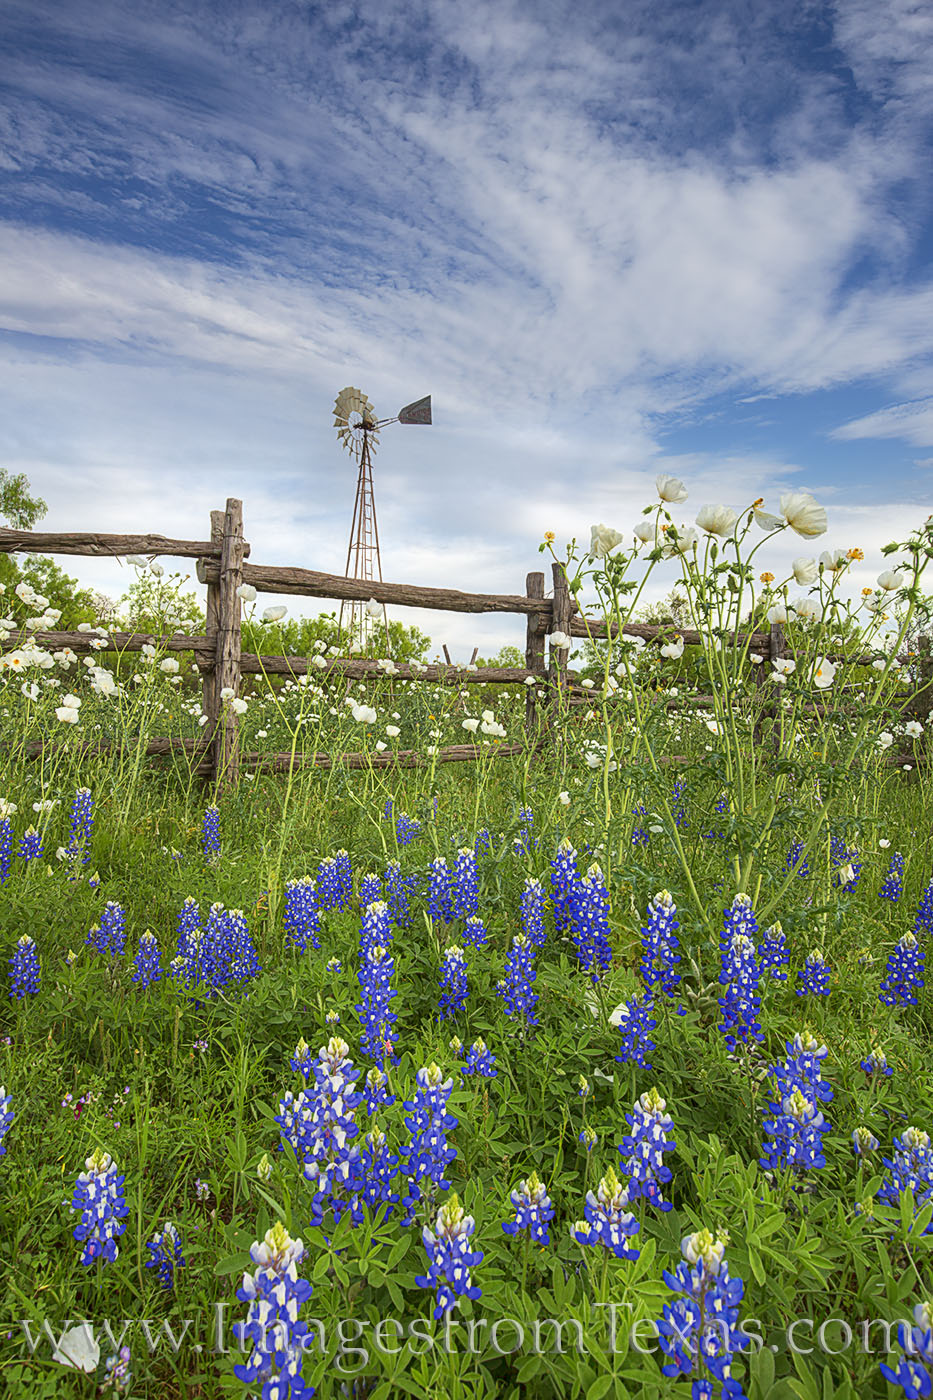 An old wooden fence stands among a spring bloom of bluebonnets and white prickly poppies. In the distance, a windmill rises up...